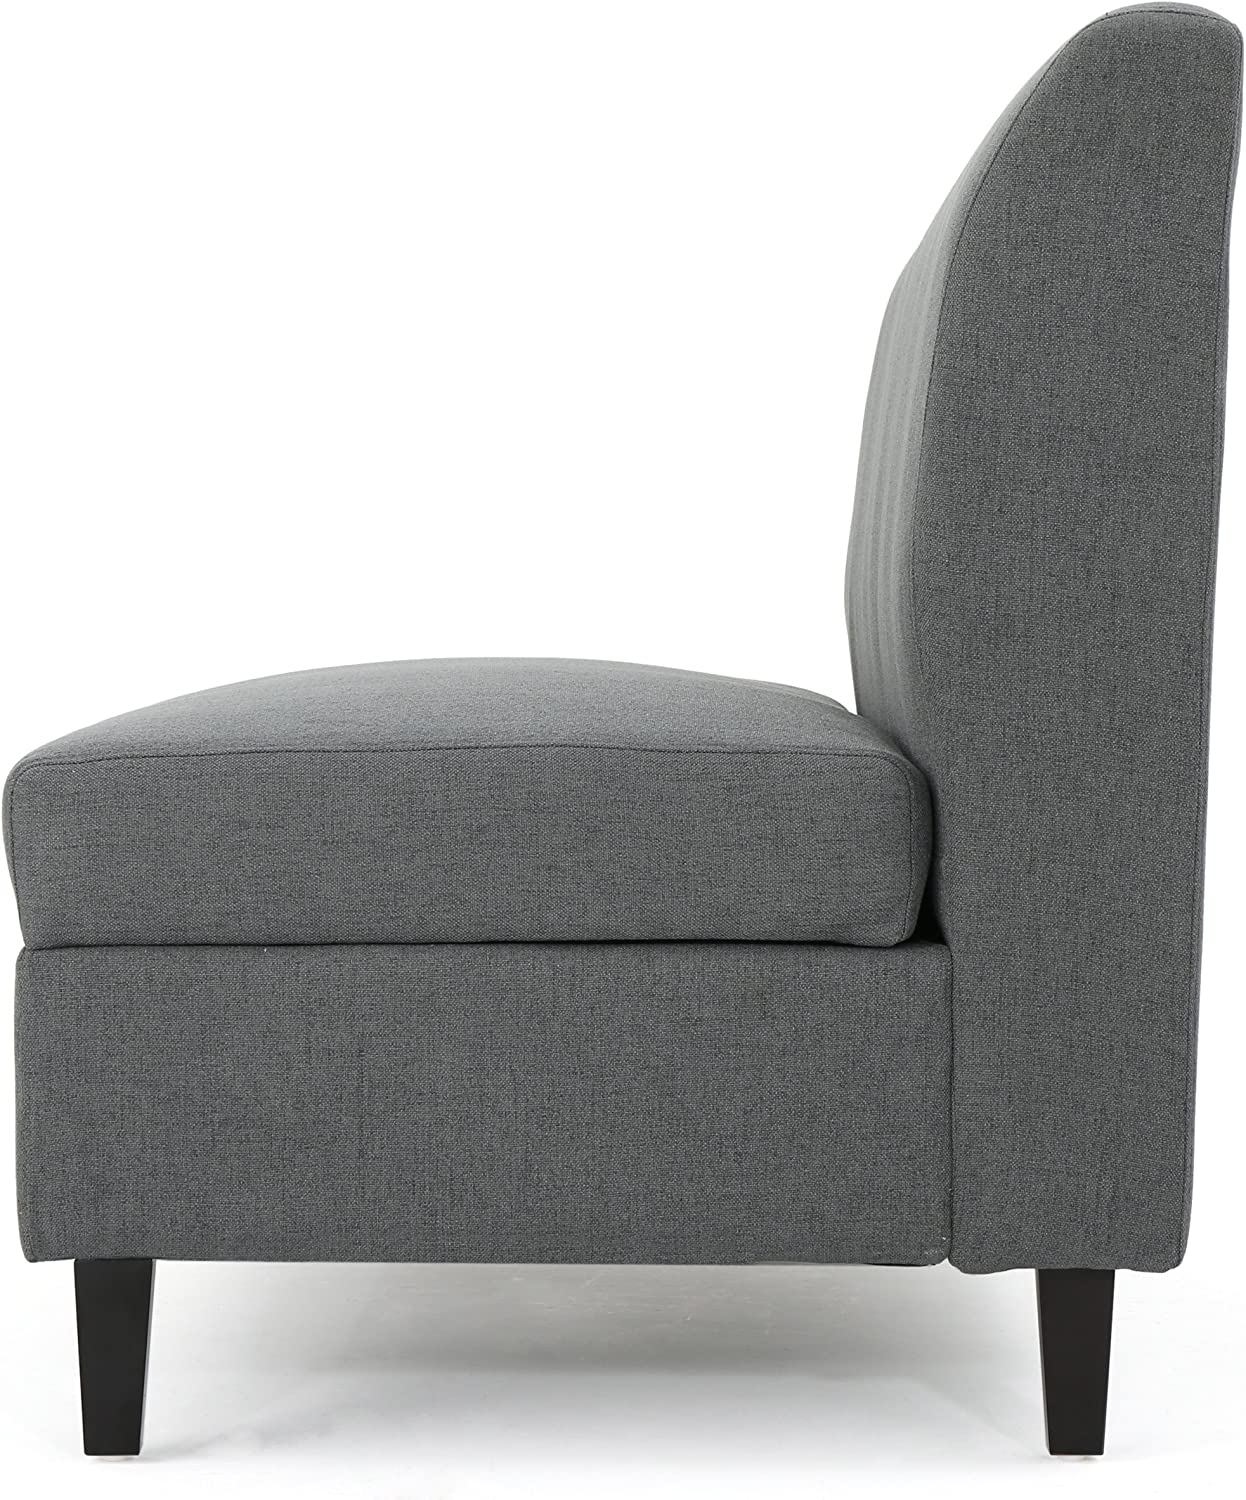 Christopher Knight Home Tovah Fabric Storage Loveseat, Charcoal: Kitchen & Dining